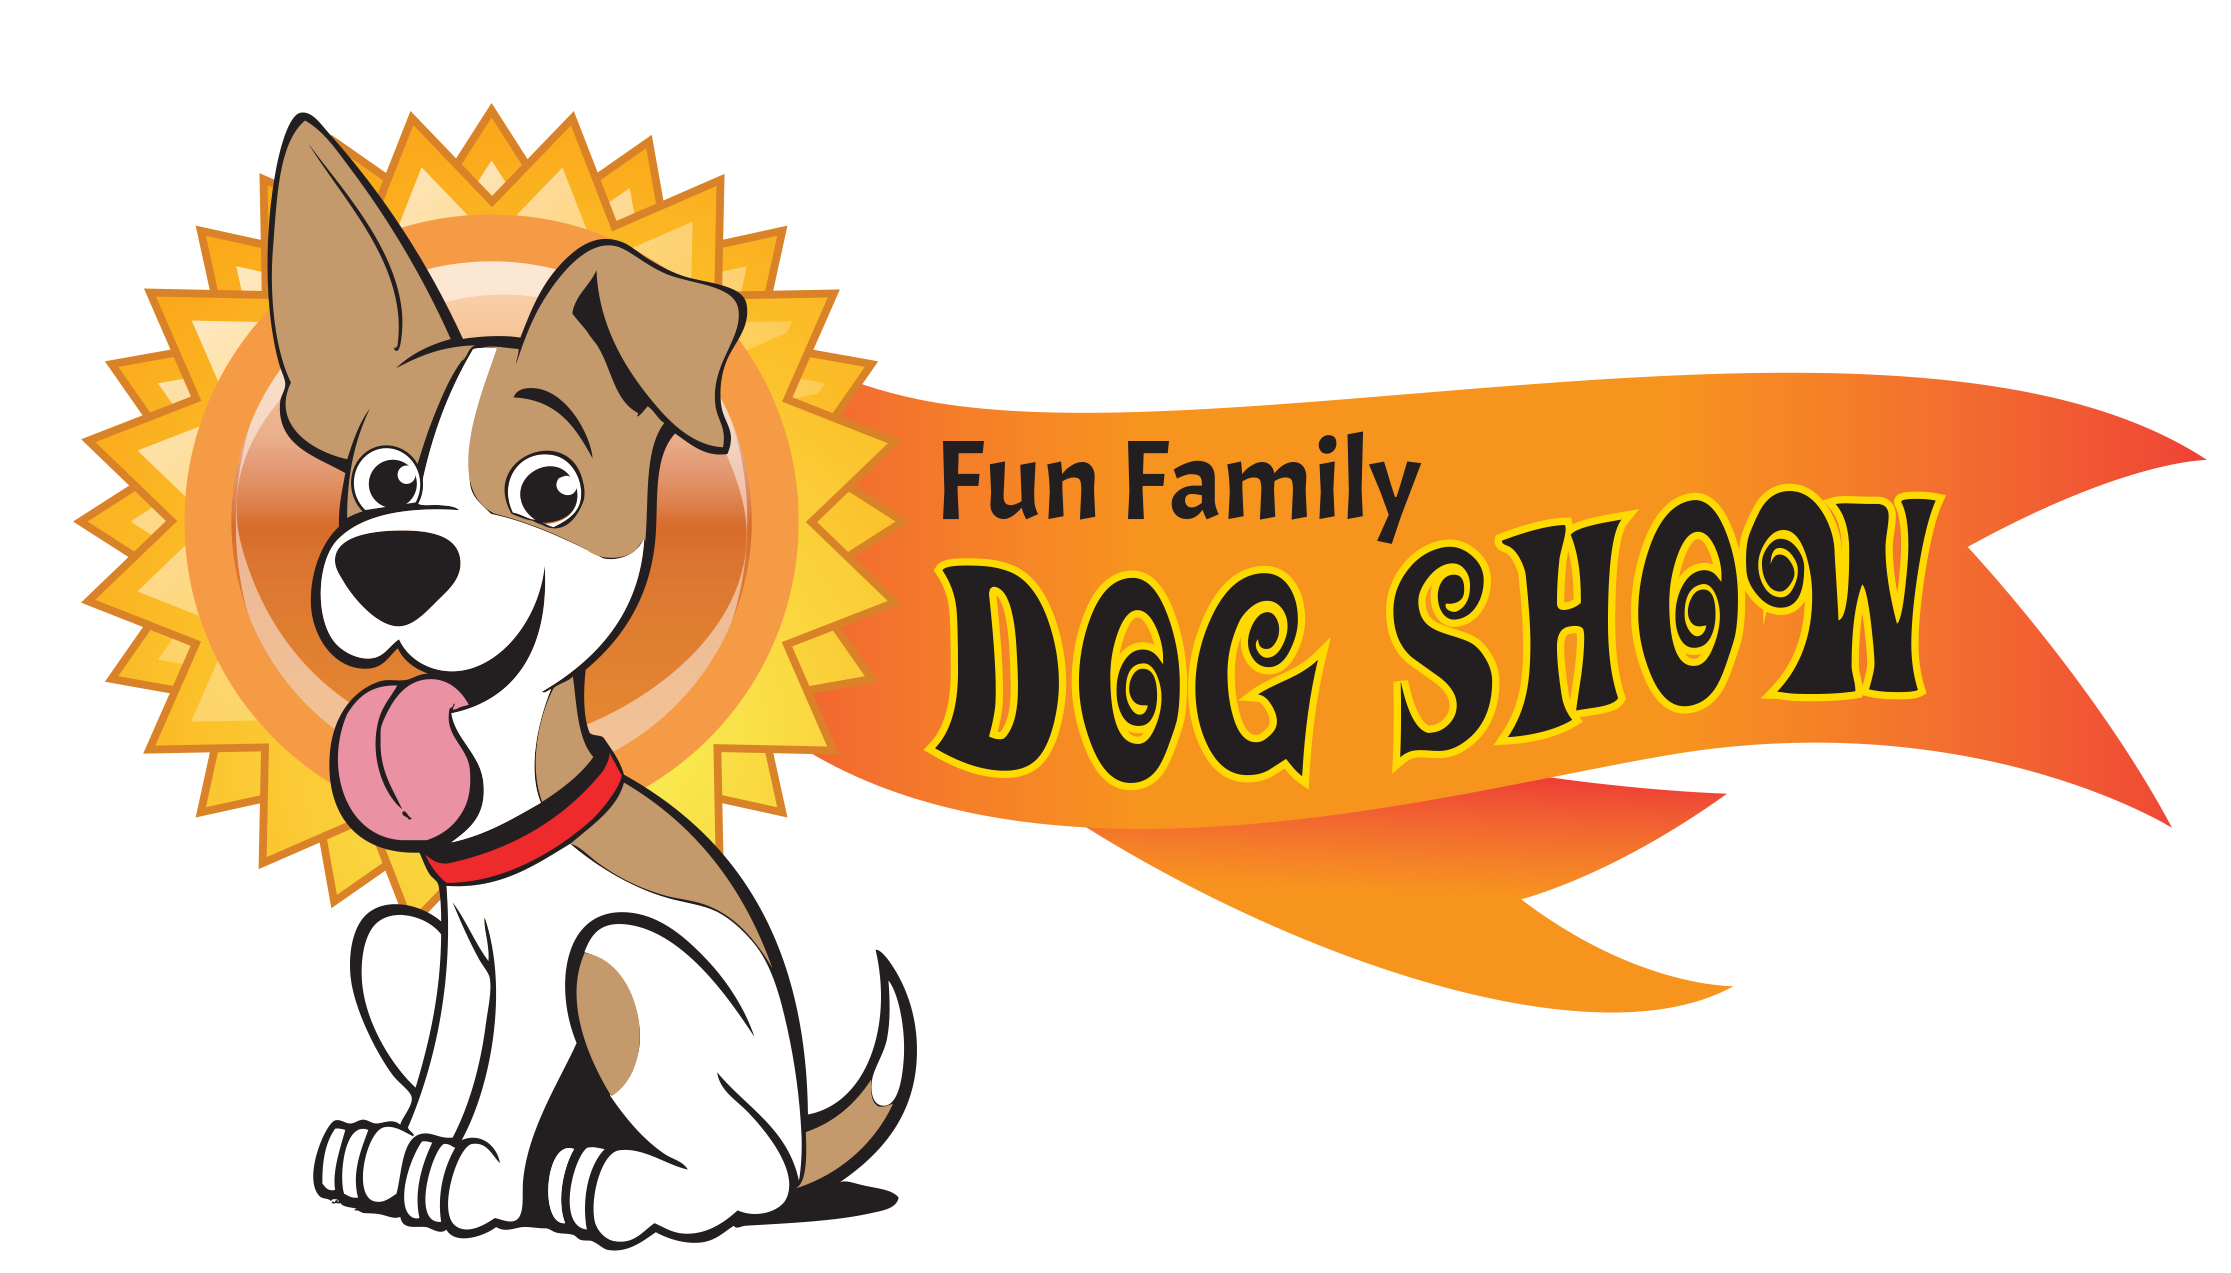 Dog show clipart clip free 28+ Collection of Dog Show Clipart | High quality, free cliparts ... clip free